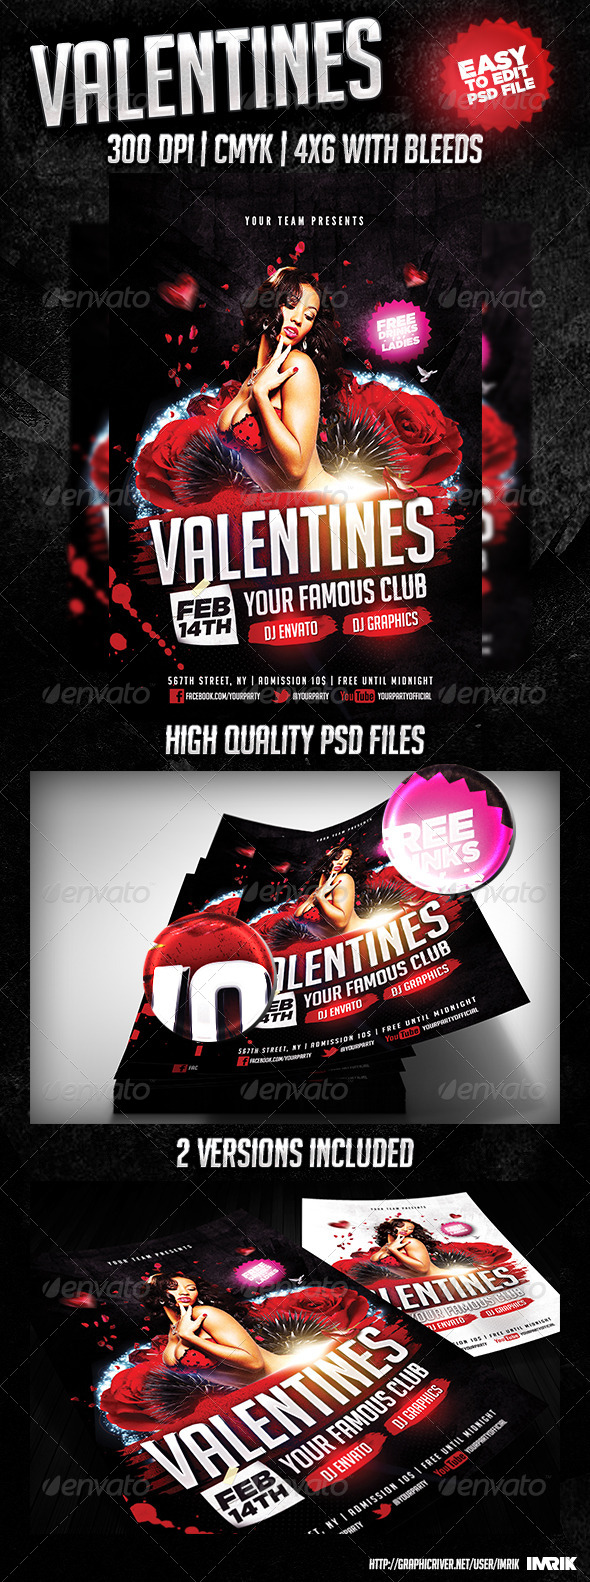 Valentines Flyer 2014 - Clubs & Parties Events